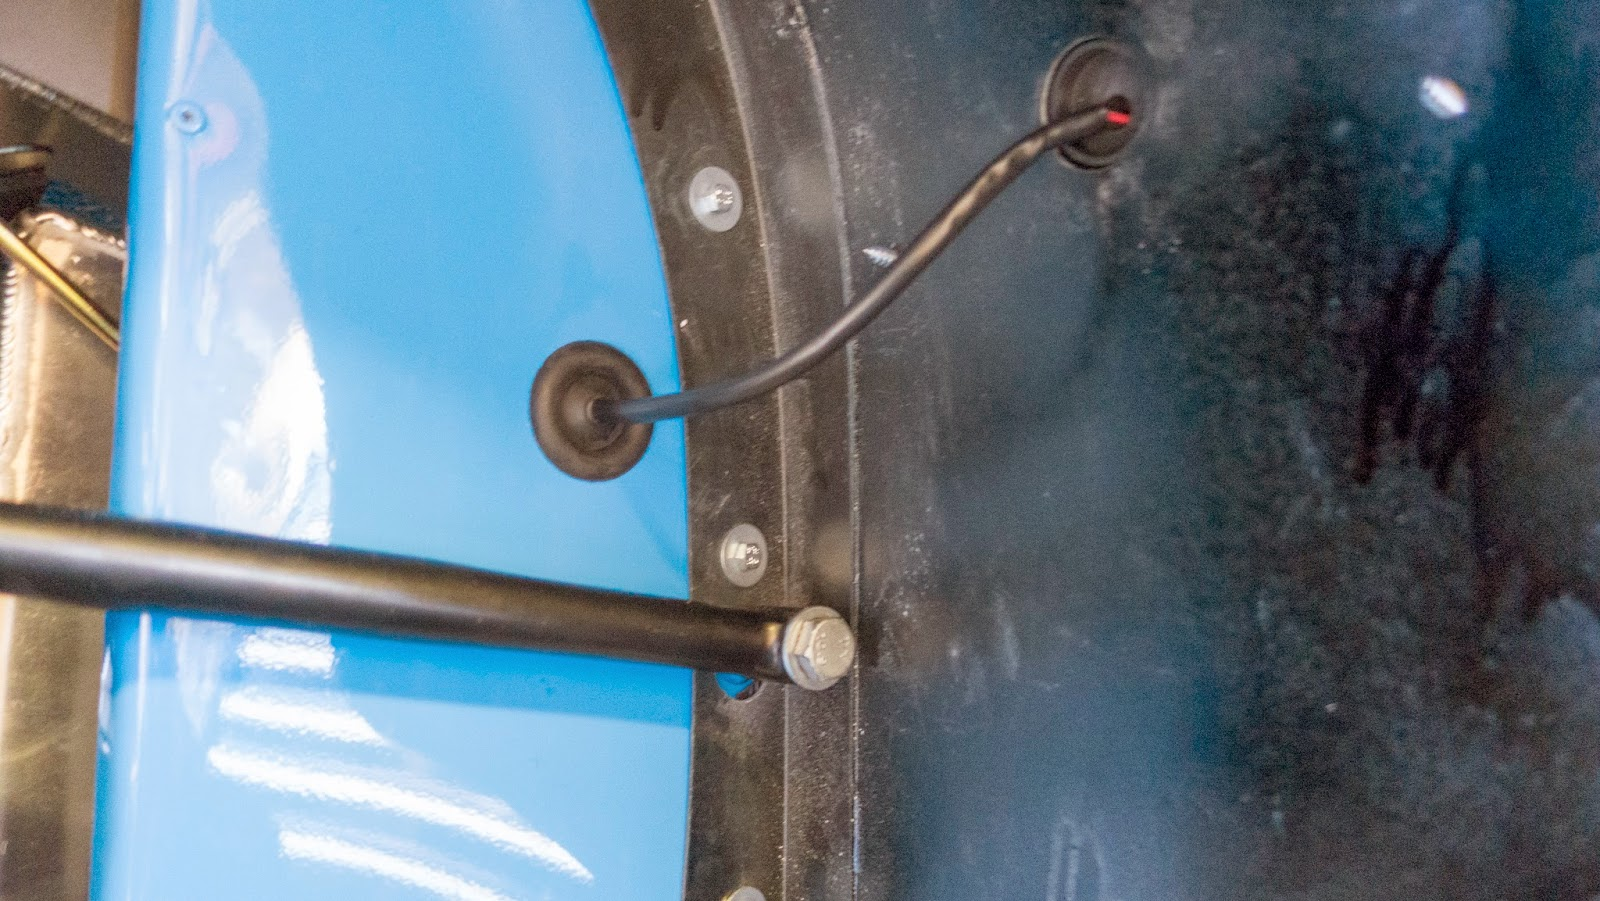 Indicator cabling routed through pre-drilled holes, plugged in behind the bodywork panel and tie wrapped in place.  The rubber grommet fits in the bodywork hole (as pictured) not the wing hole.